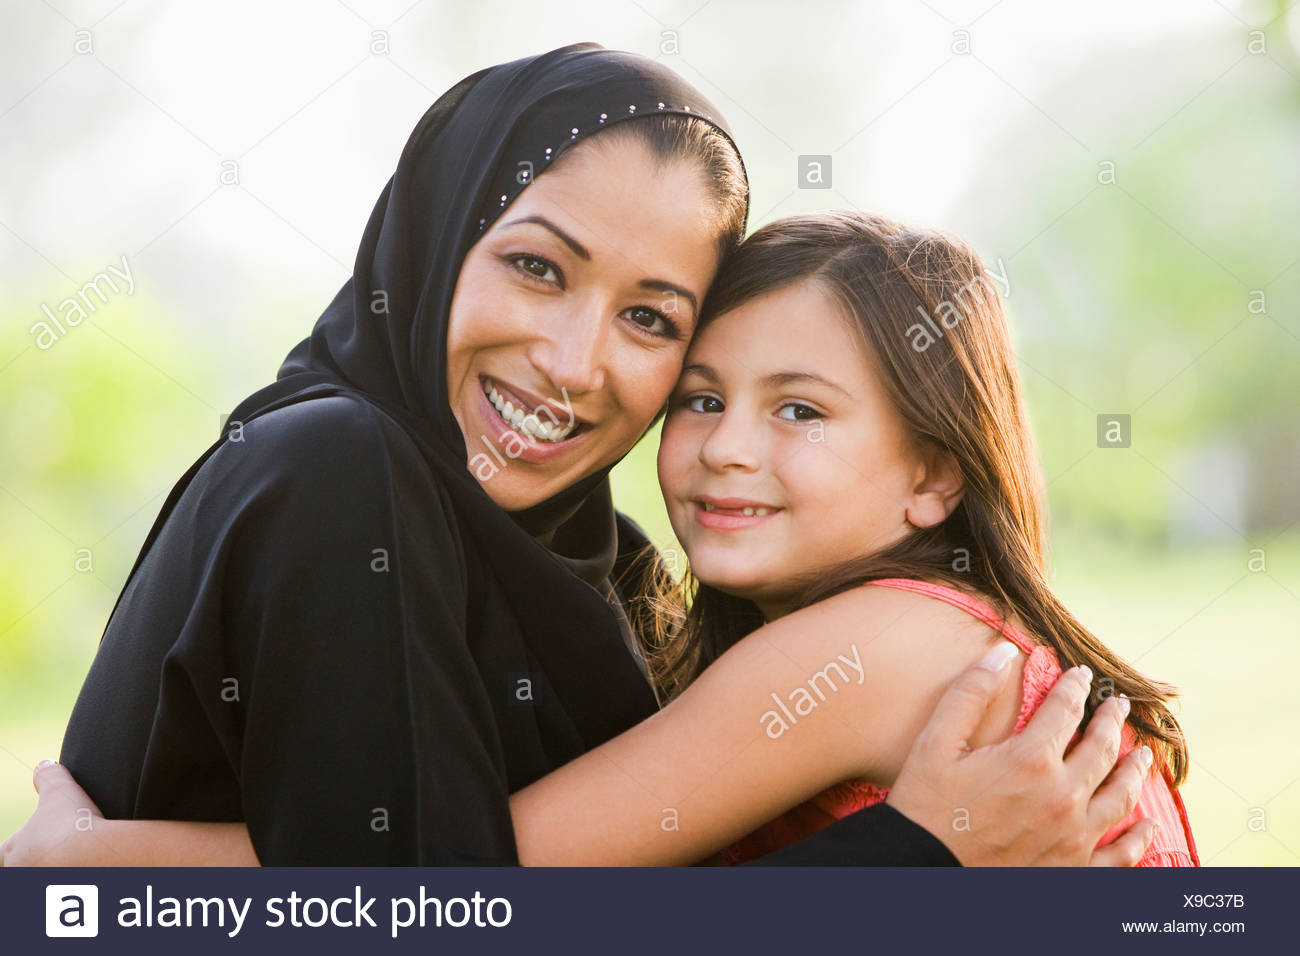 Mother and daughter outdoors in park embracing and smiling (selective focus) - Stock Image